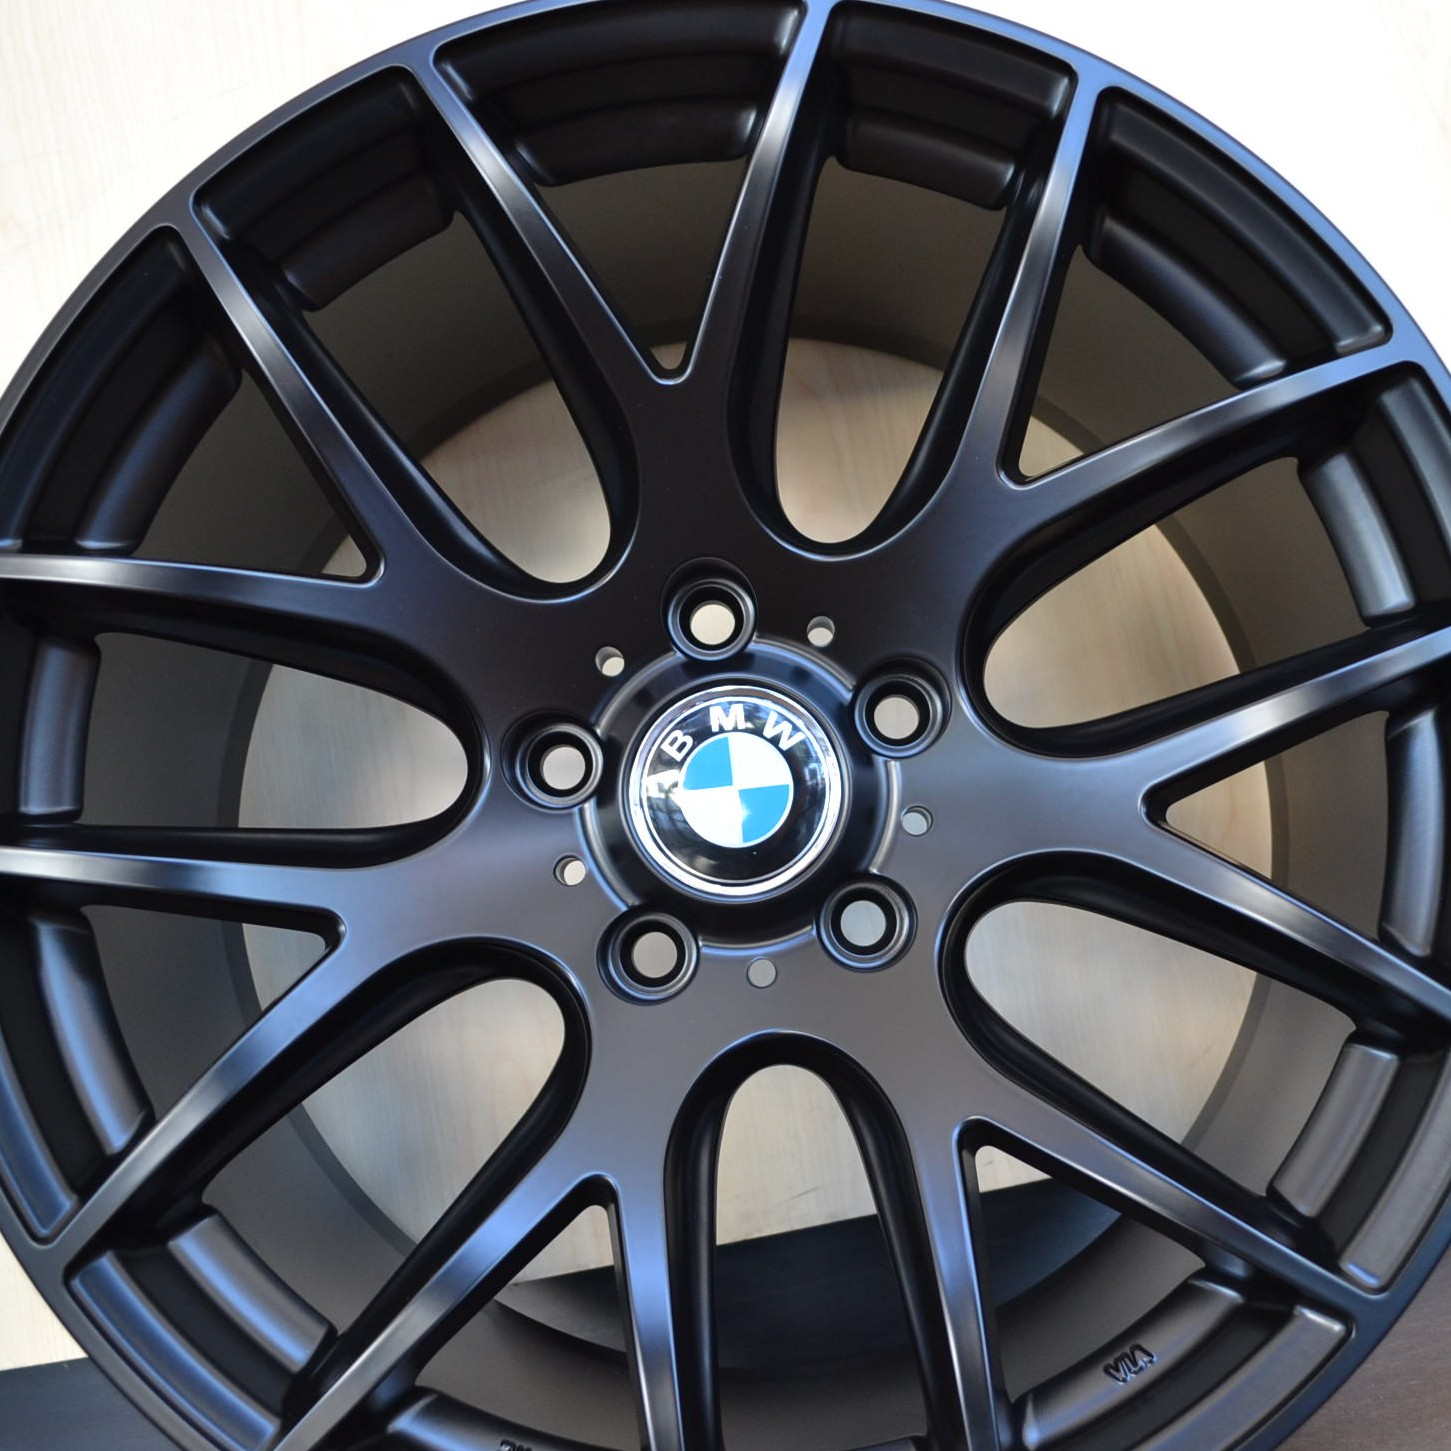 Bmw X5 Wheels: Bing Images